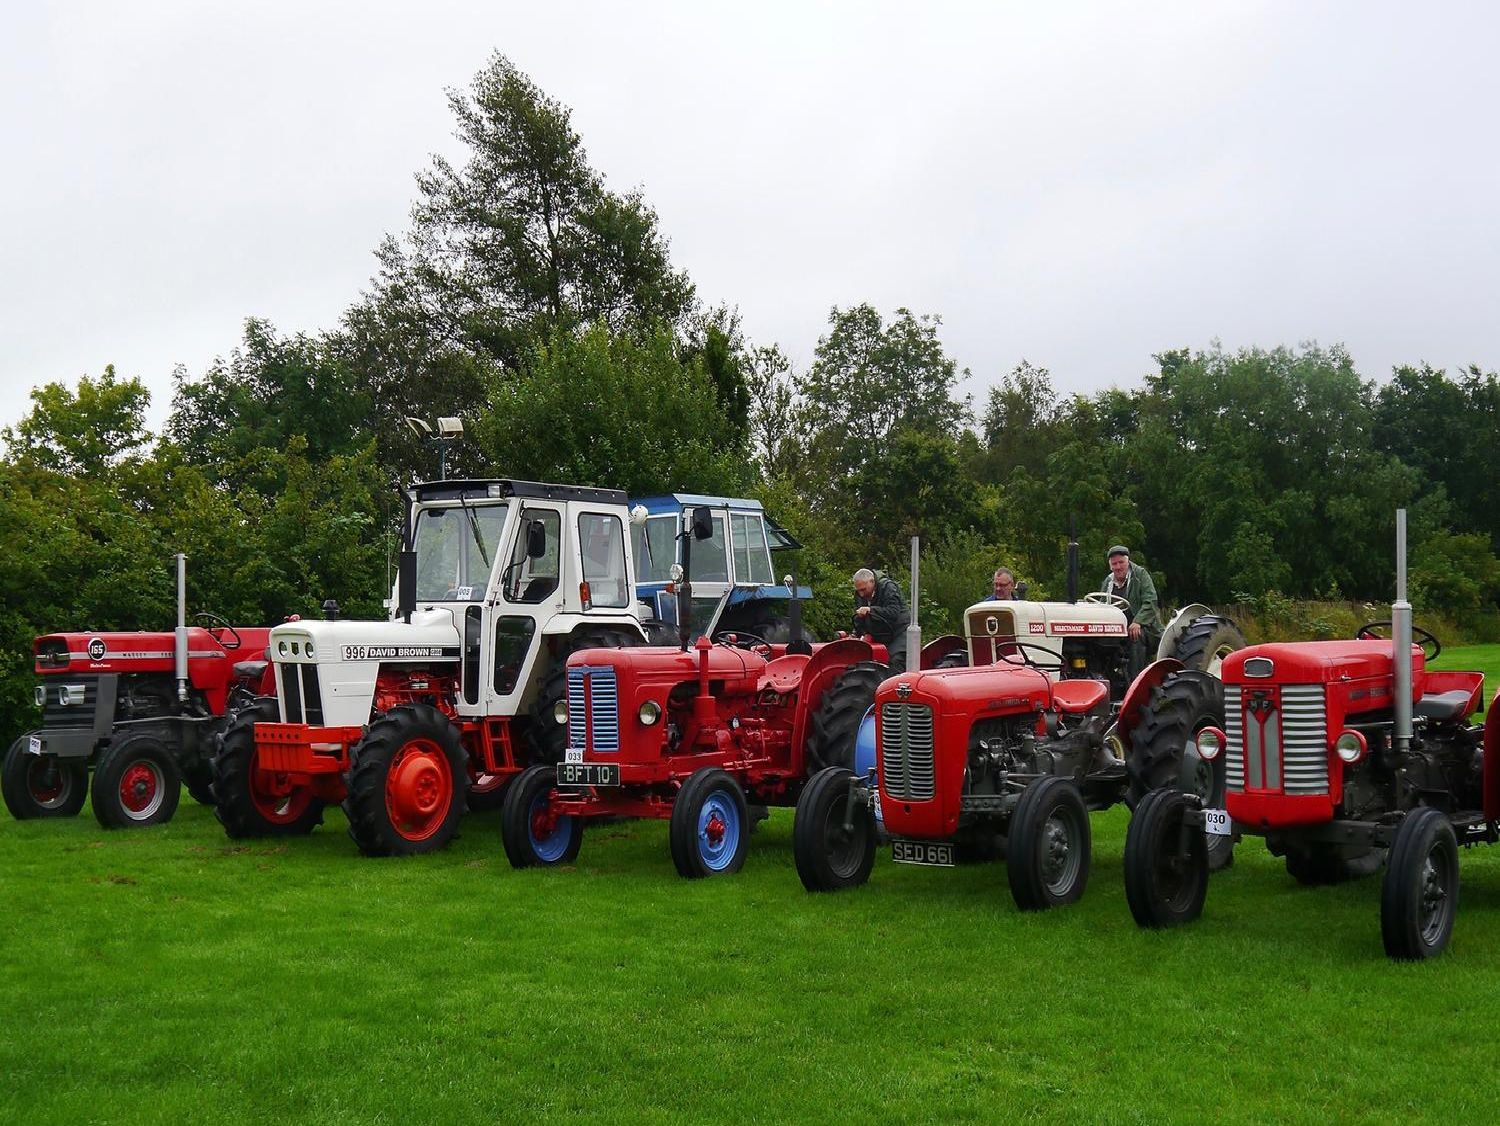 Tractors line up ready for the seventh annual Pendle Witch Tractor Road Run